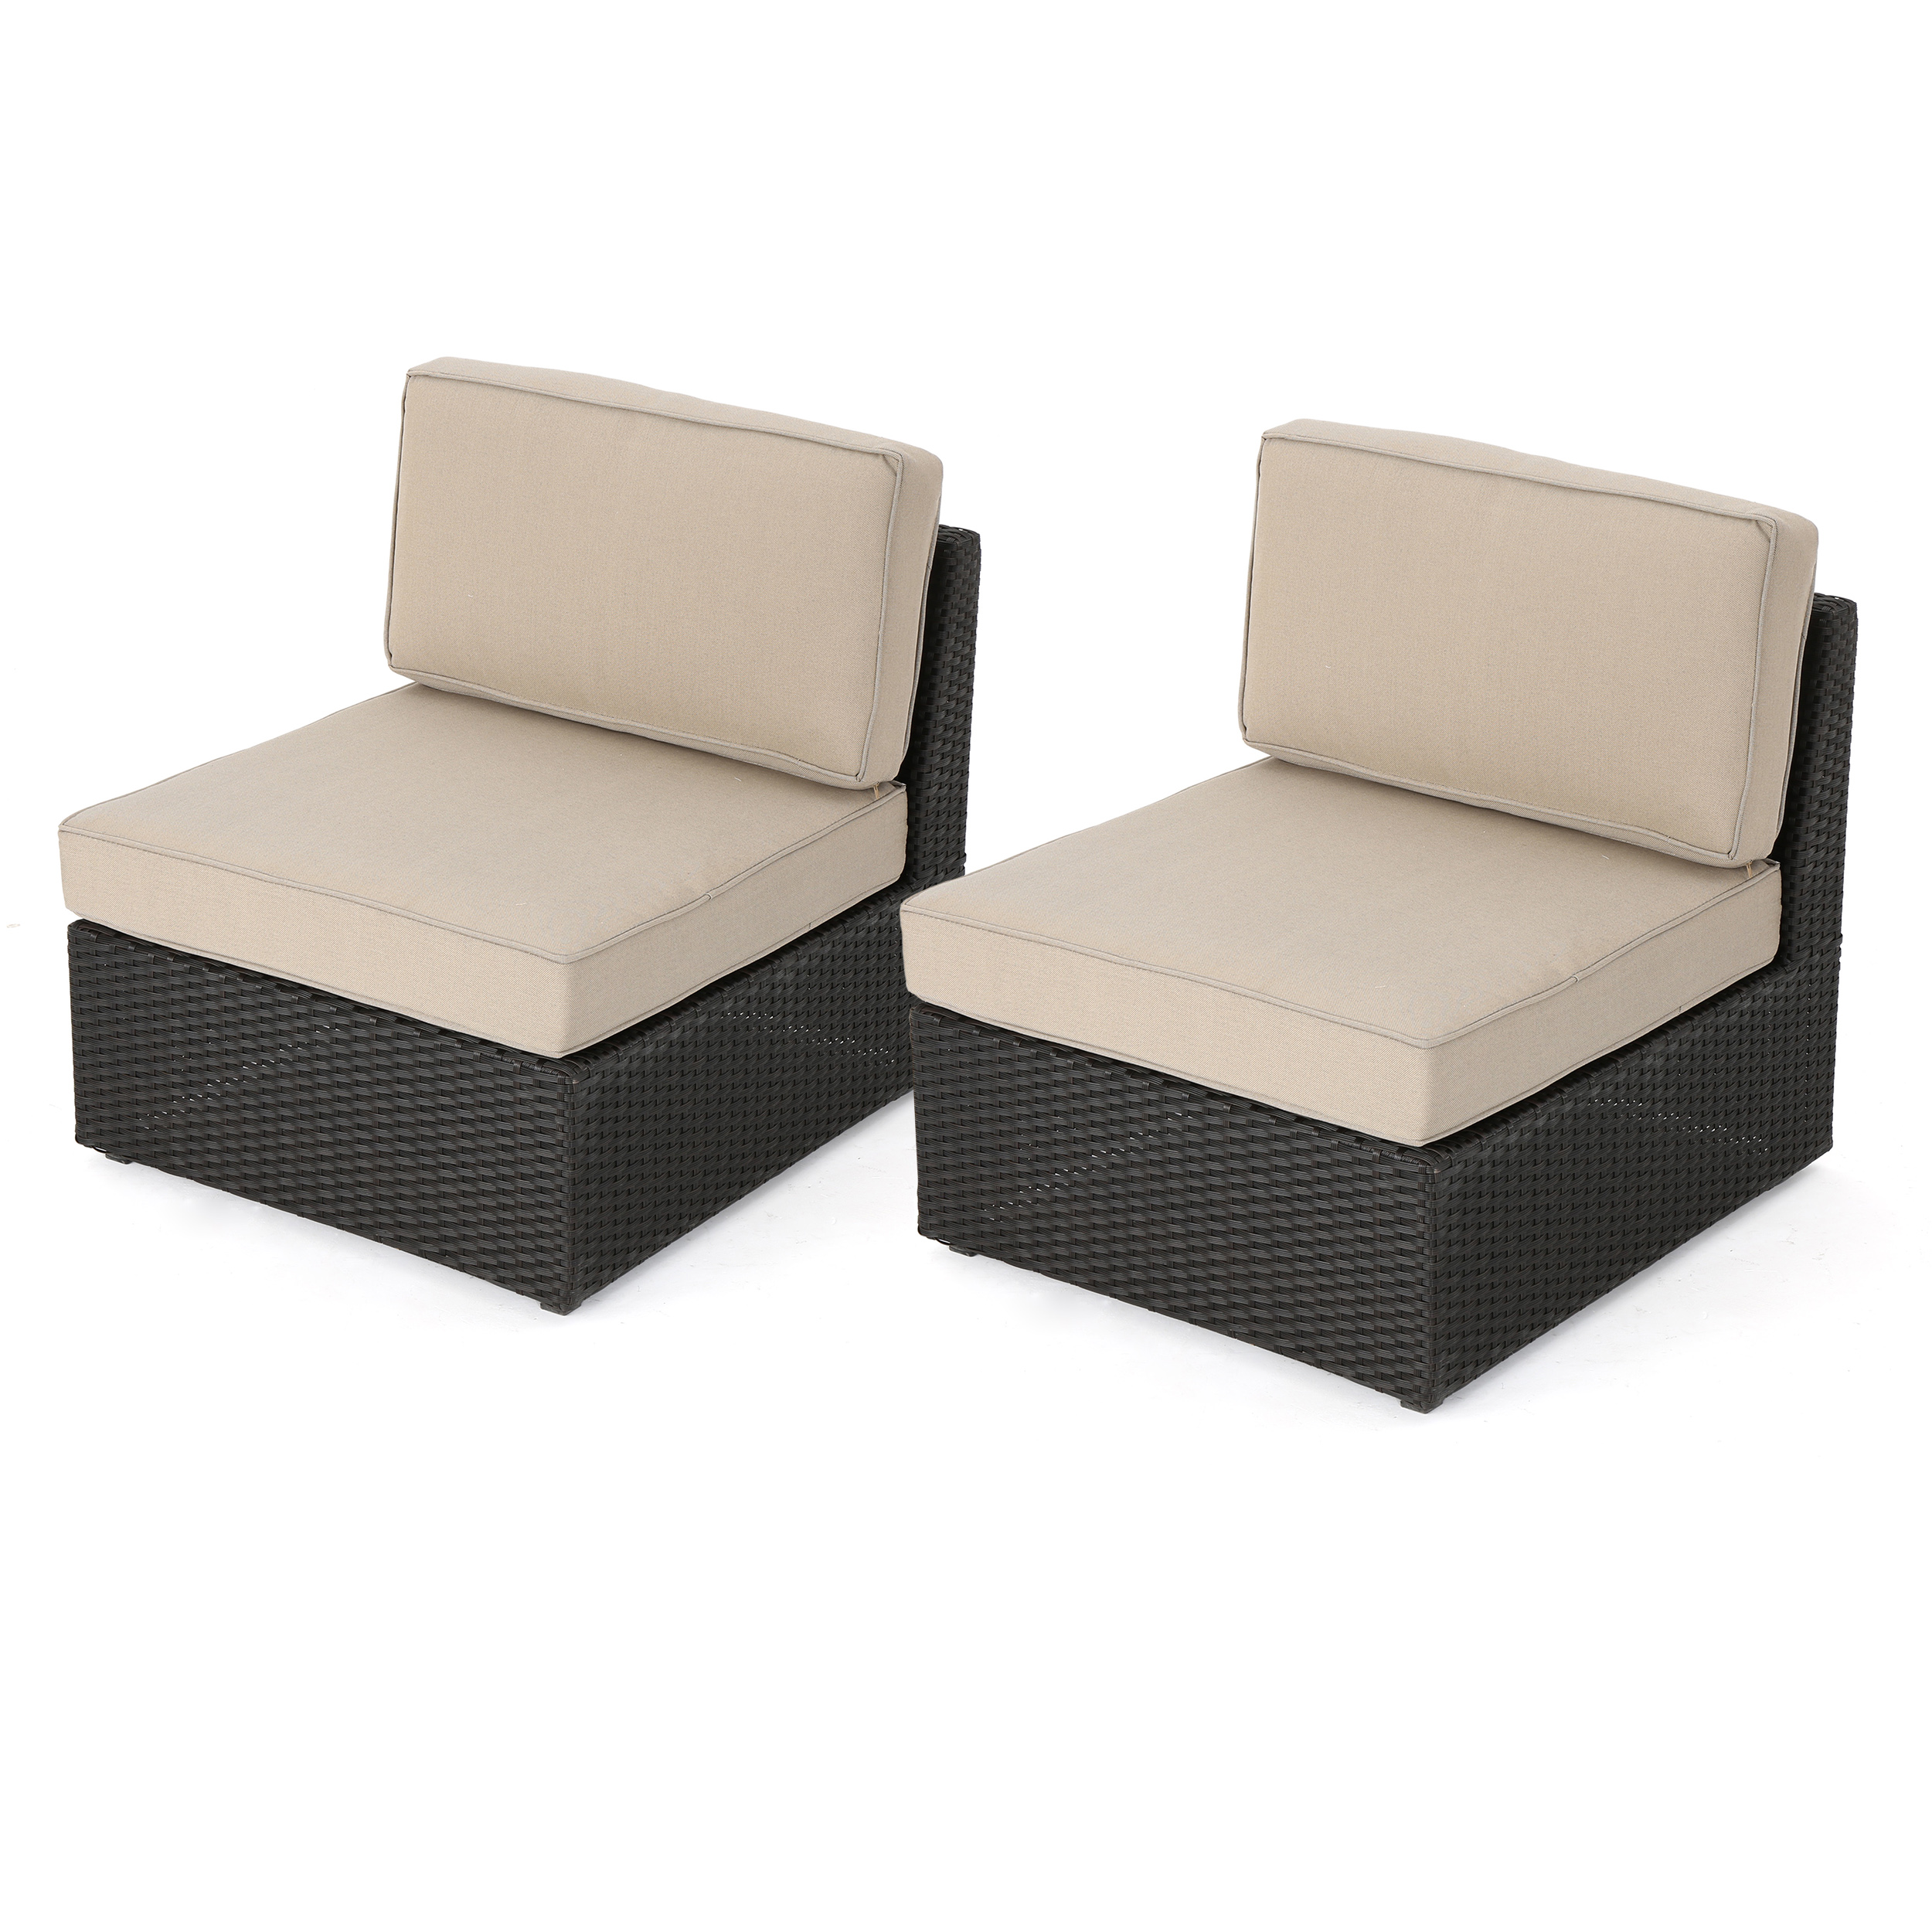 Sabrina Outdoor Dark Brown Wicker Armless Sectional Sofa Seat With Water  Resistant Cushions, Set Of 2, Beige